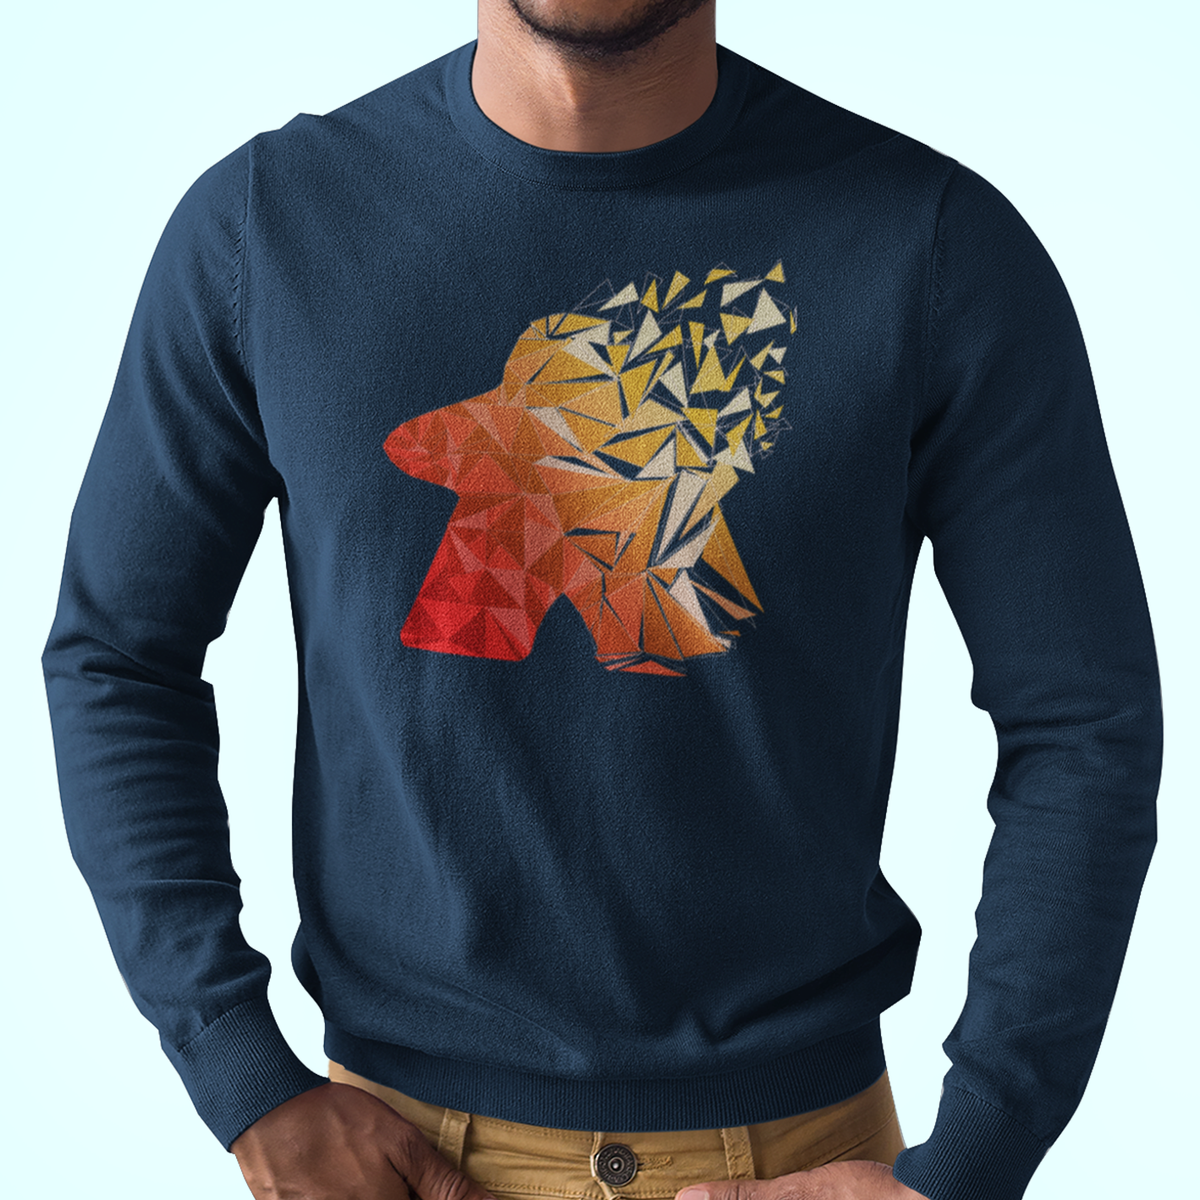 Warm Fragmented Meeple Longsleeve T-Shirt